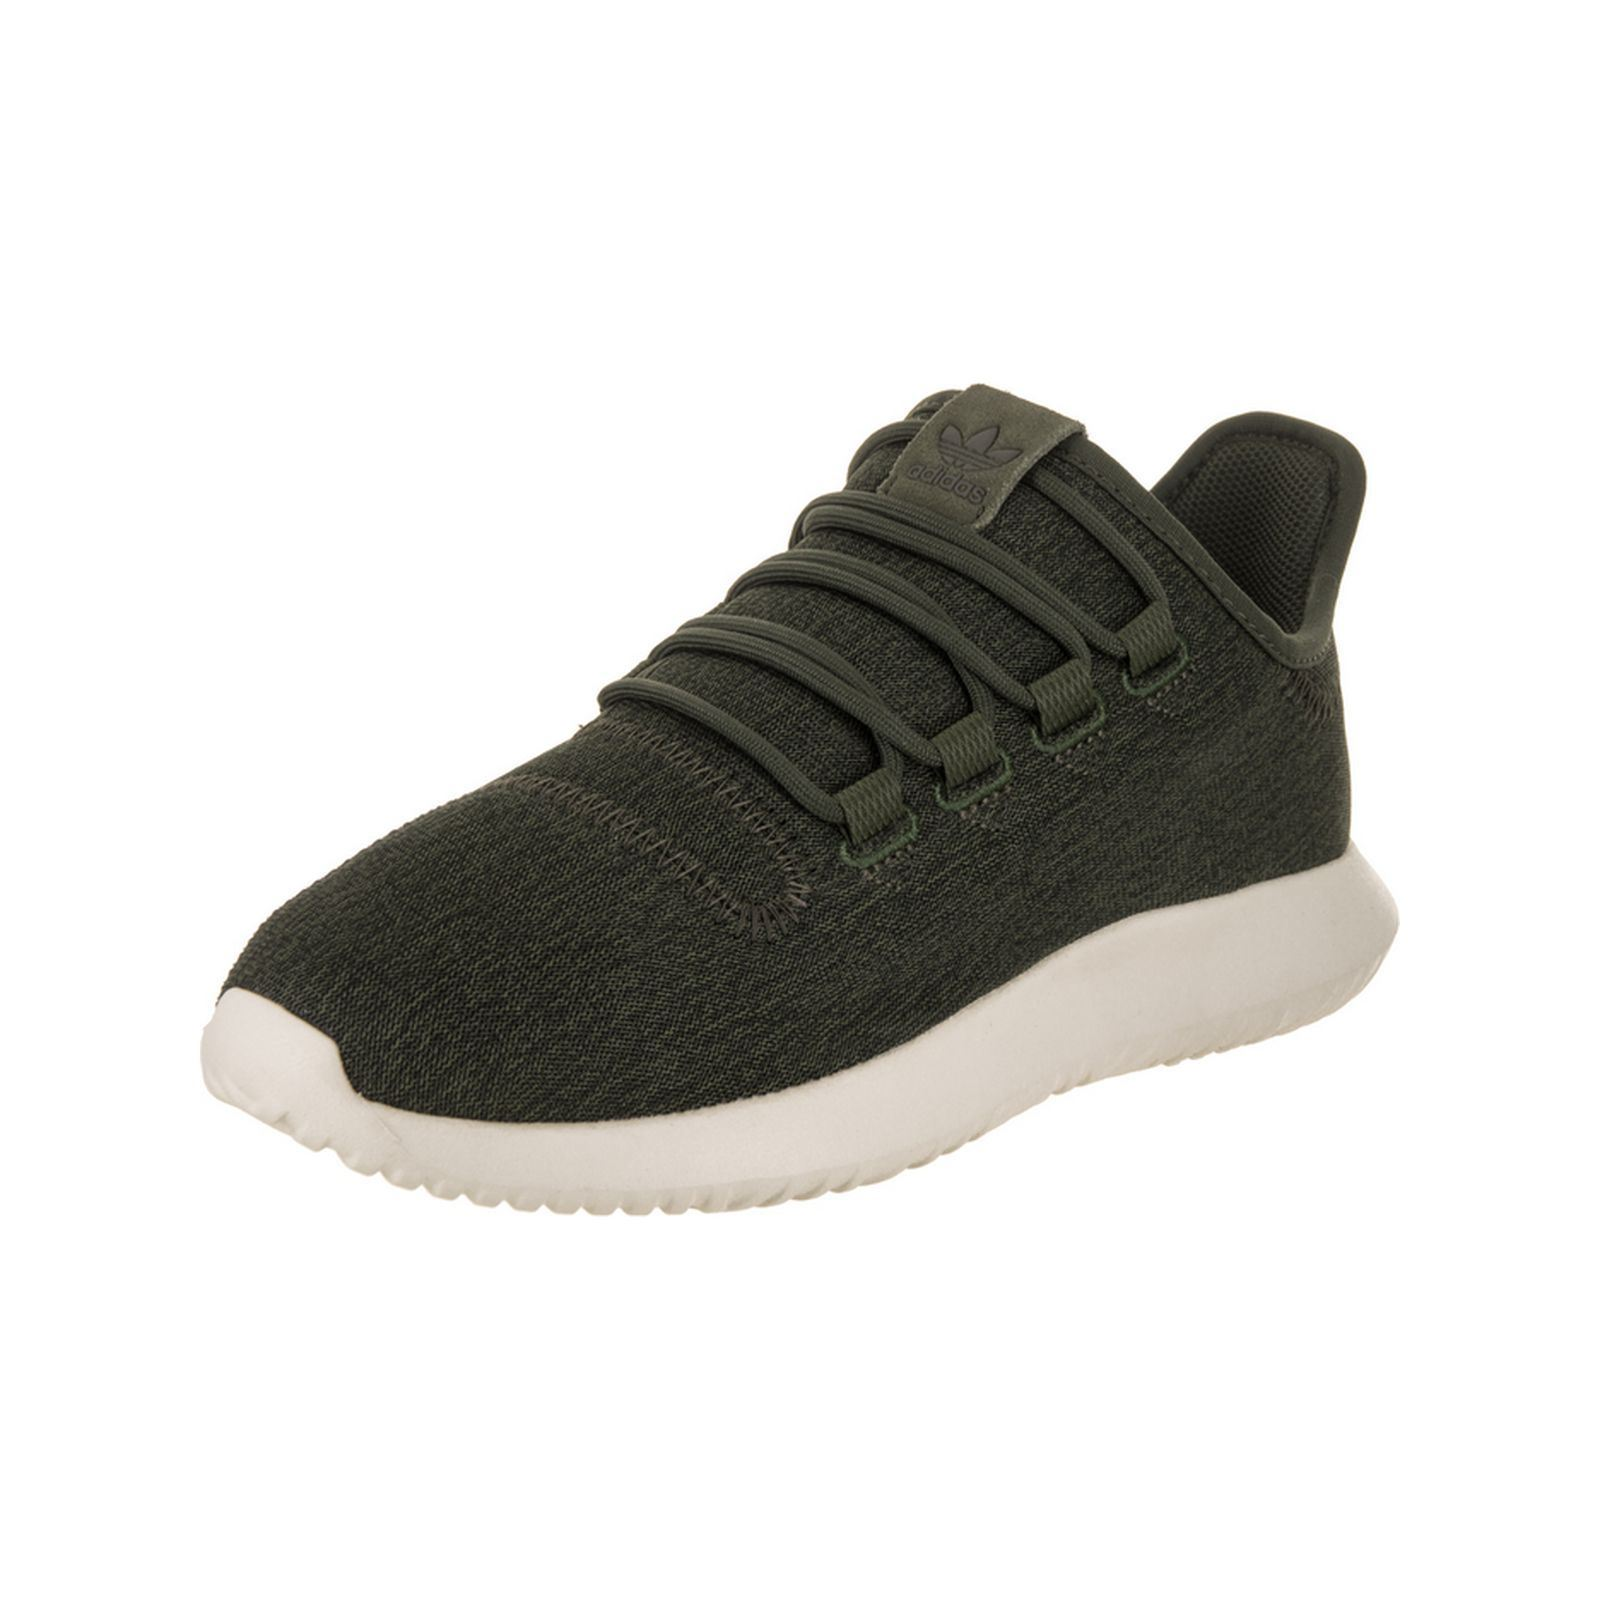 competitive price 6335f 6f3aa adidas Originals Tubular shadow Baskets kaki BrandAlley